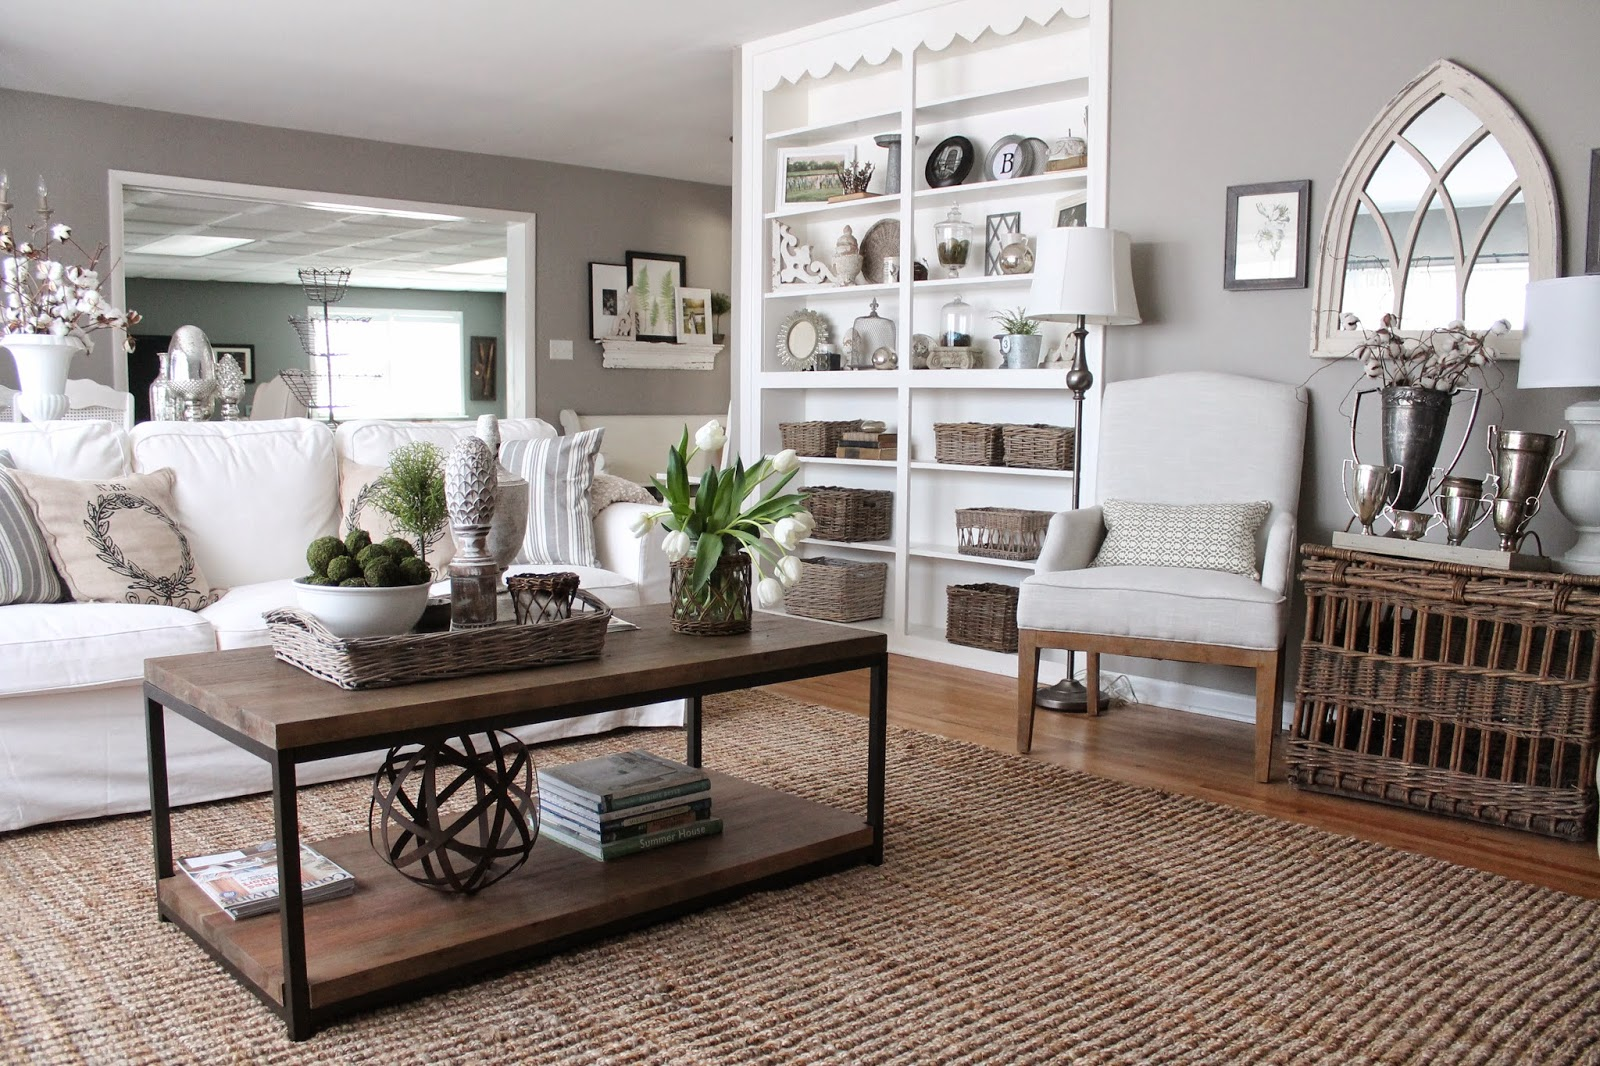 https://cdn.homedit.com/wp-content/uploads/2015/07/gray-and-taupe-colors-living-room.jpg